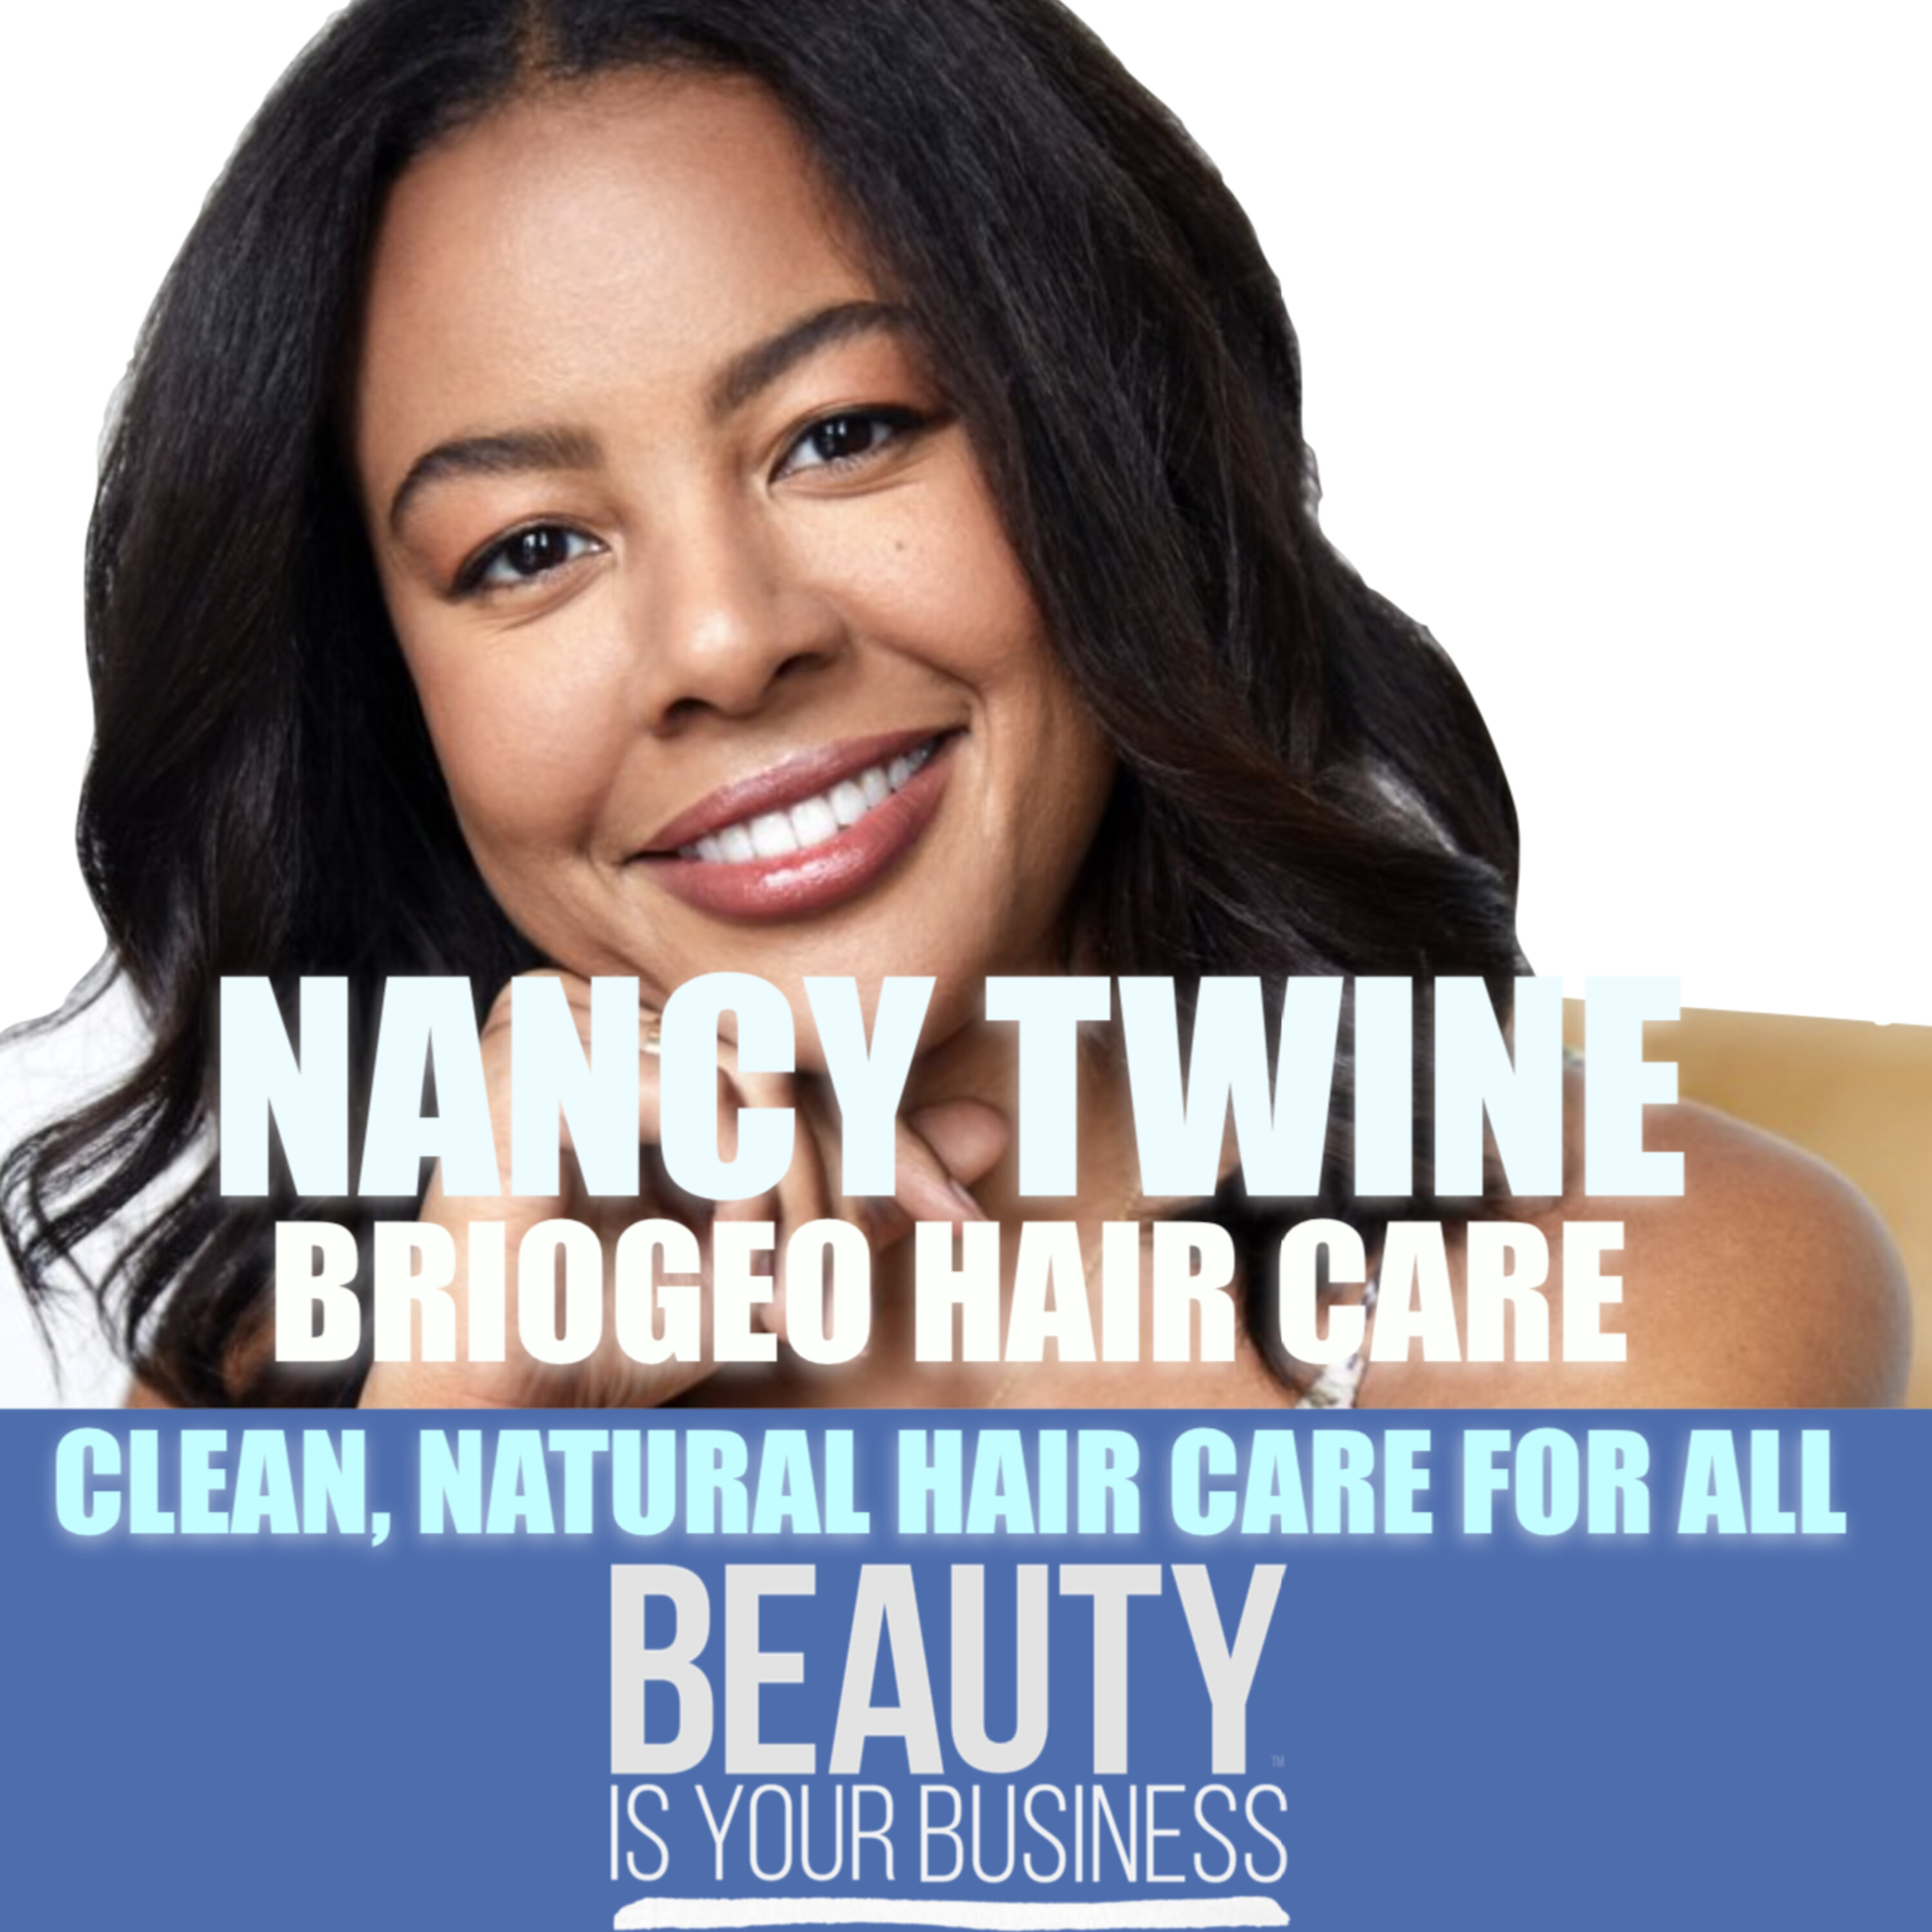 Nancy Twine of Briogeo Hair Care - Clean Hair Care for All, Naturally